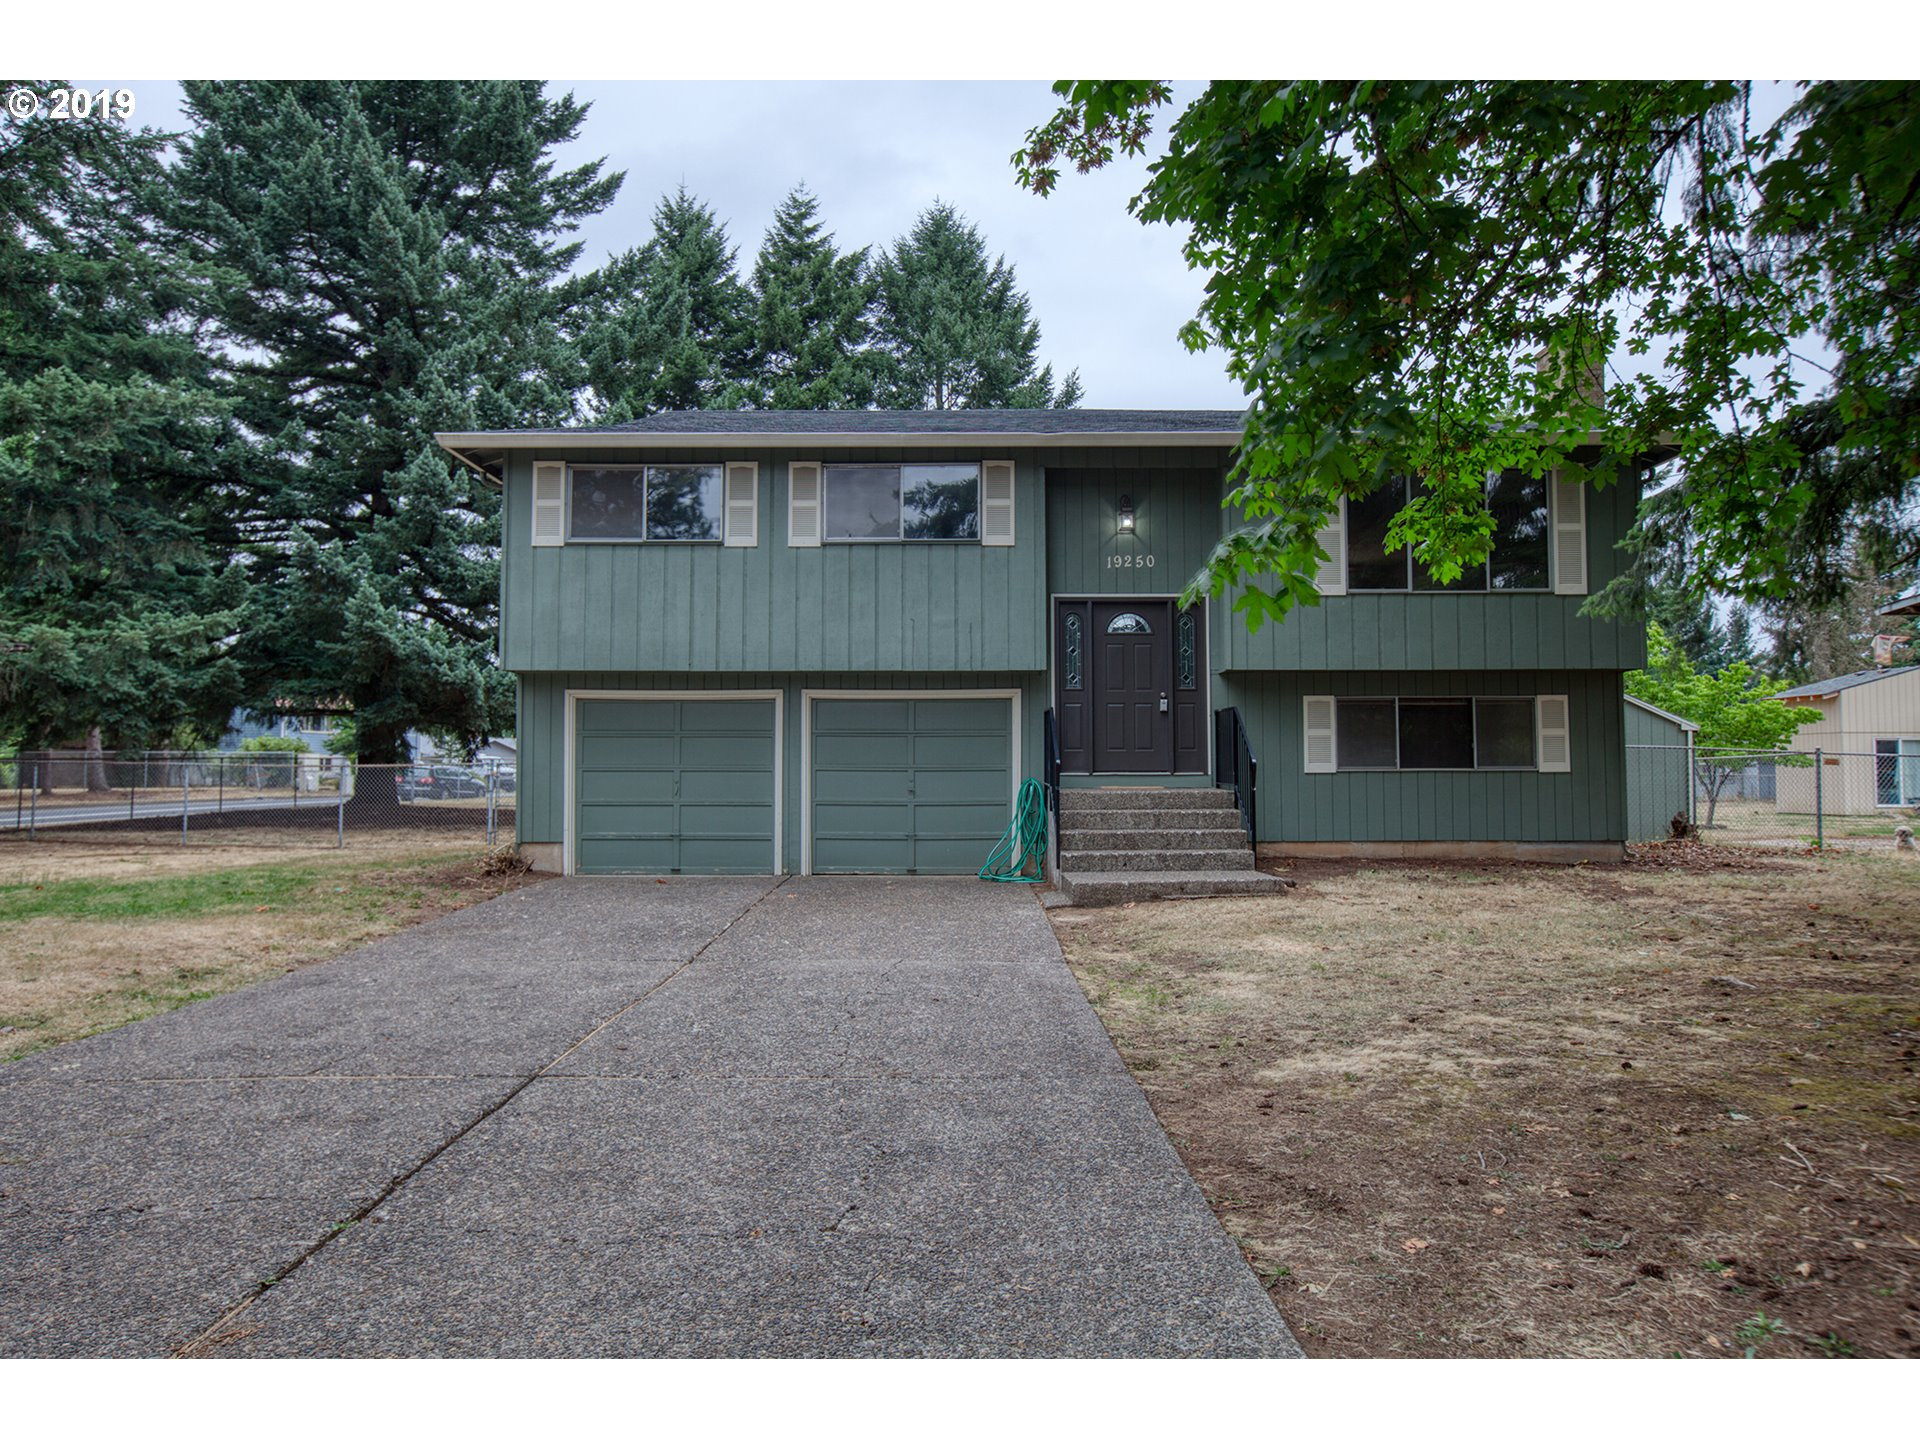 19250 MEYERS RD, Oregon City OR 97045